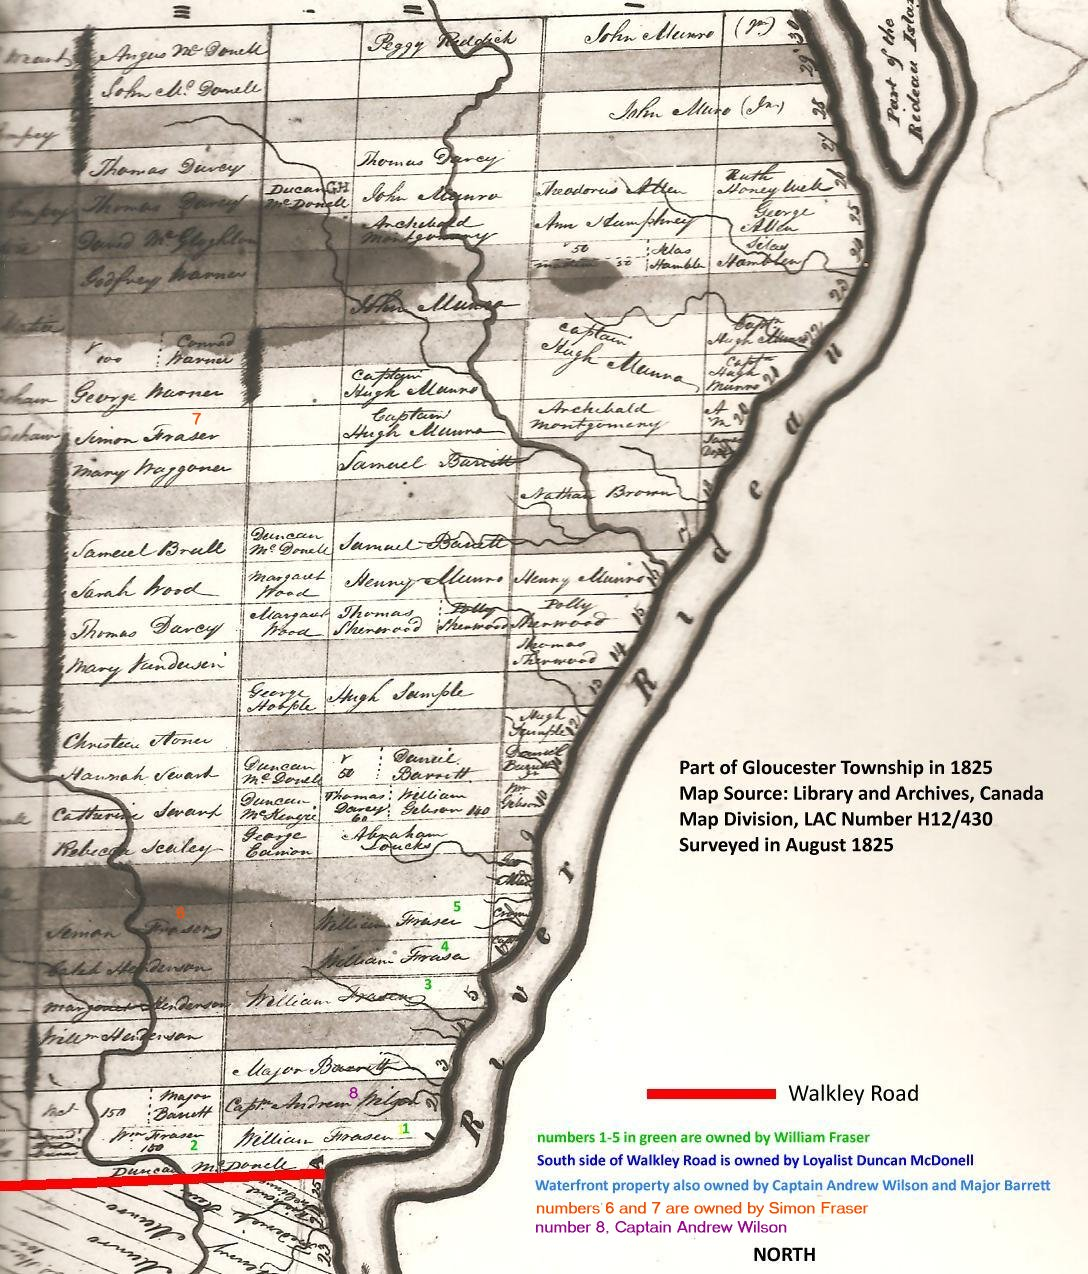 Map of Gloucester Township, Upper Canada, in 1825